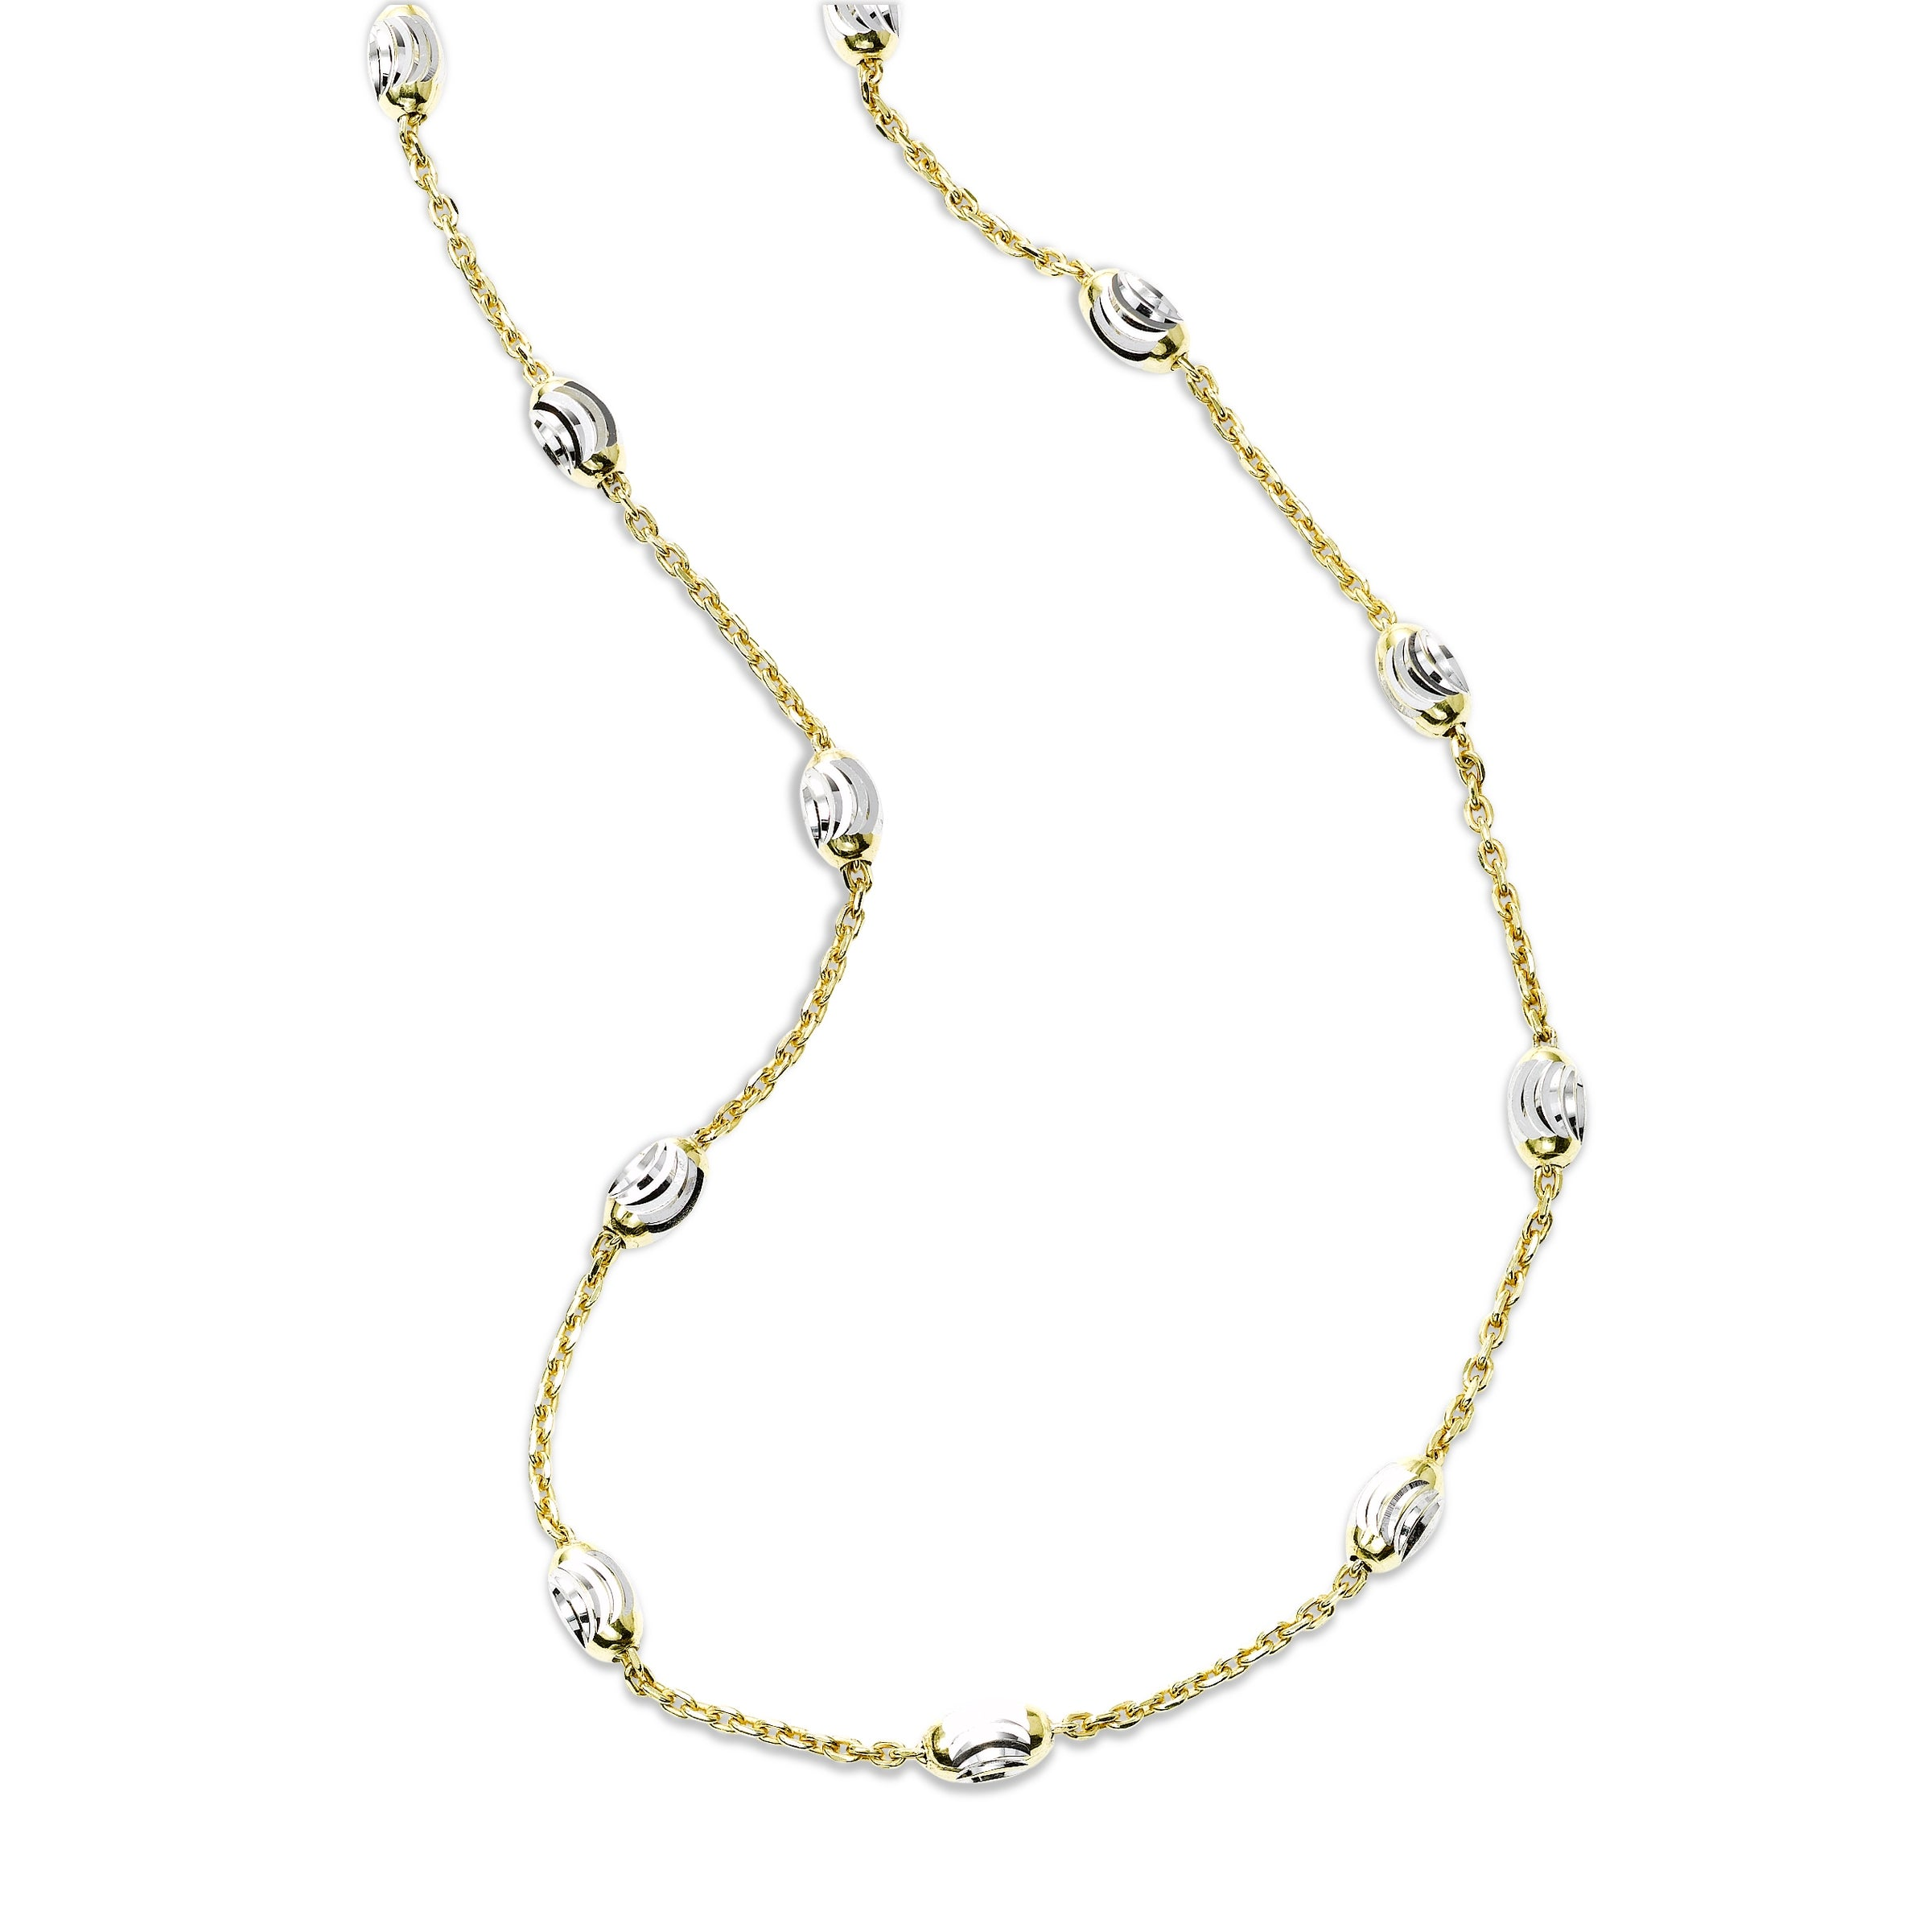 Faceted Bead Station Necklace, Sterling with 18K Yellow Gold Plating